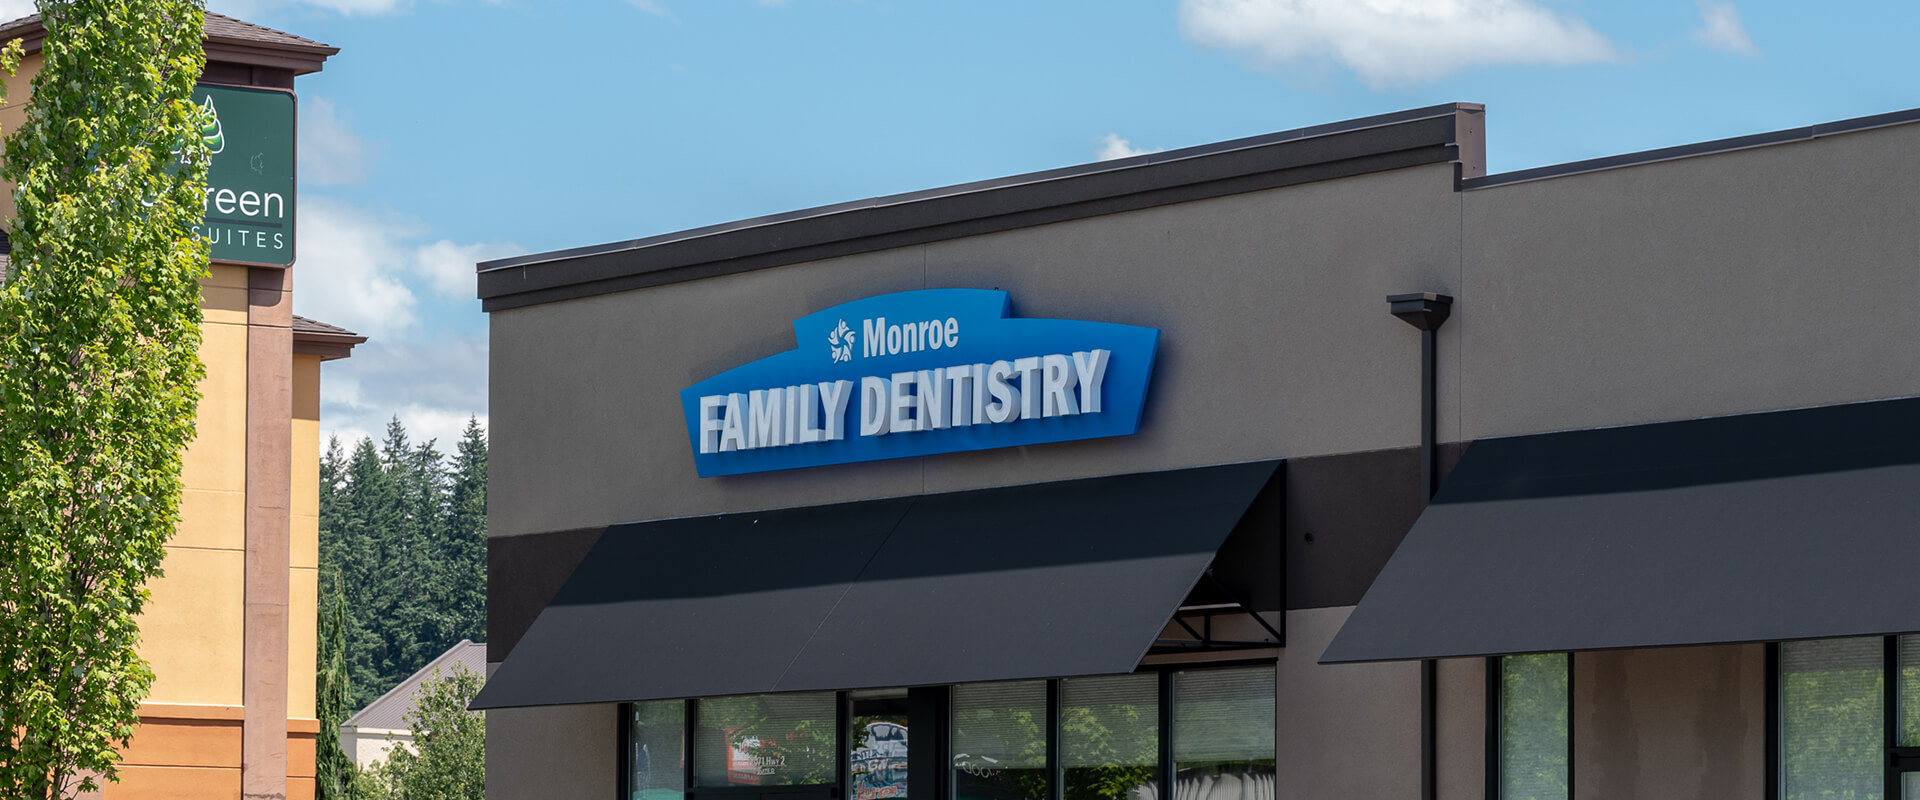 The Monroe Family Dentistry building exterior with our logo above the door